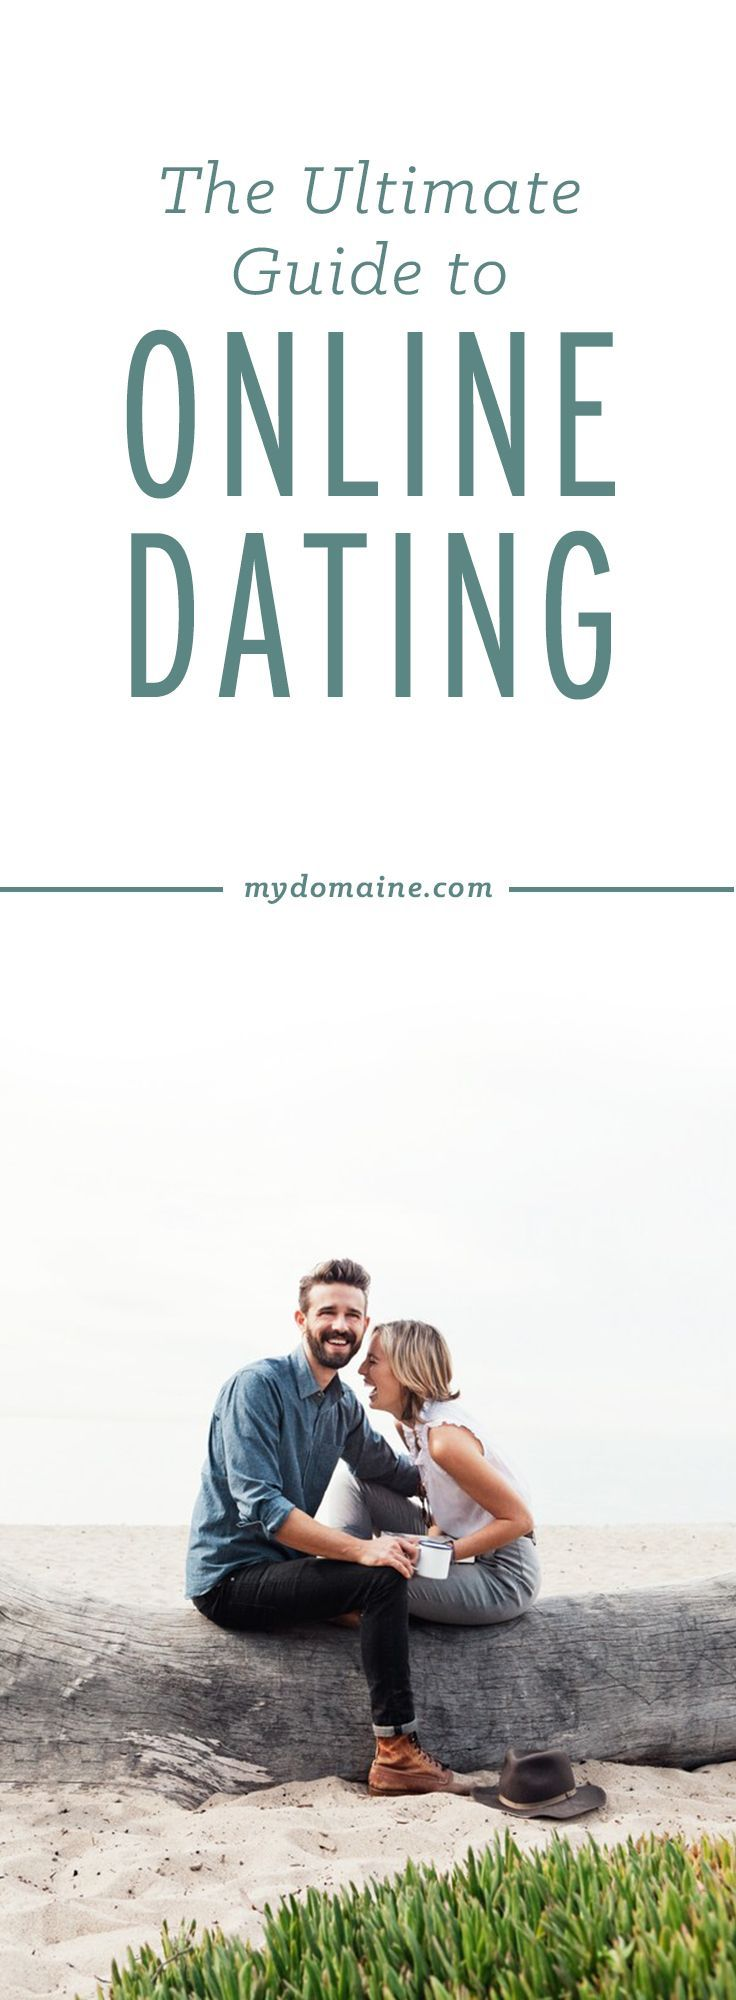 Dating & relationship inspiration